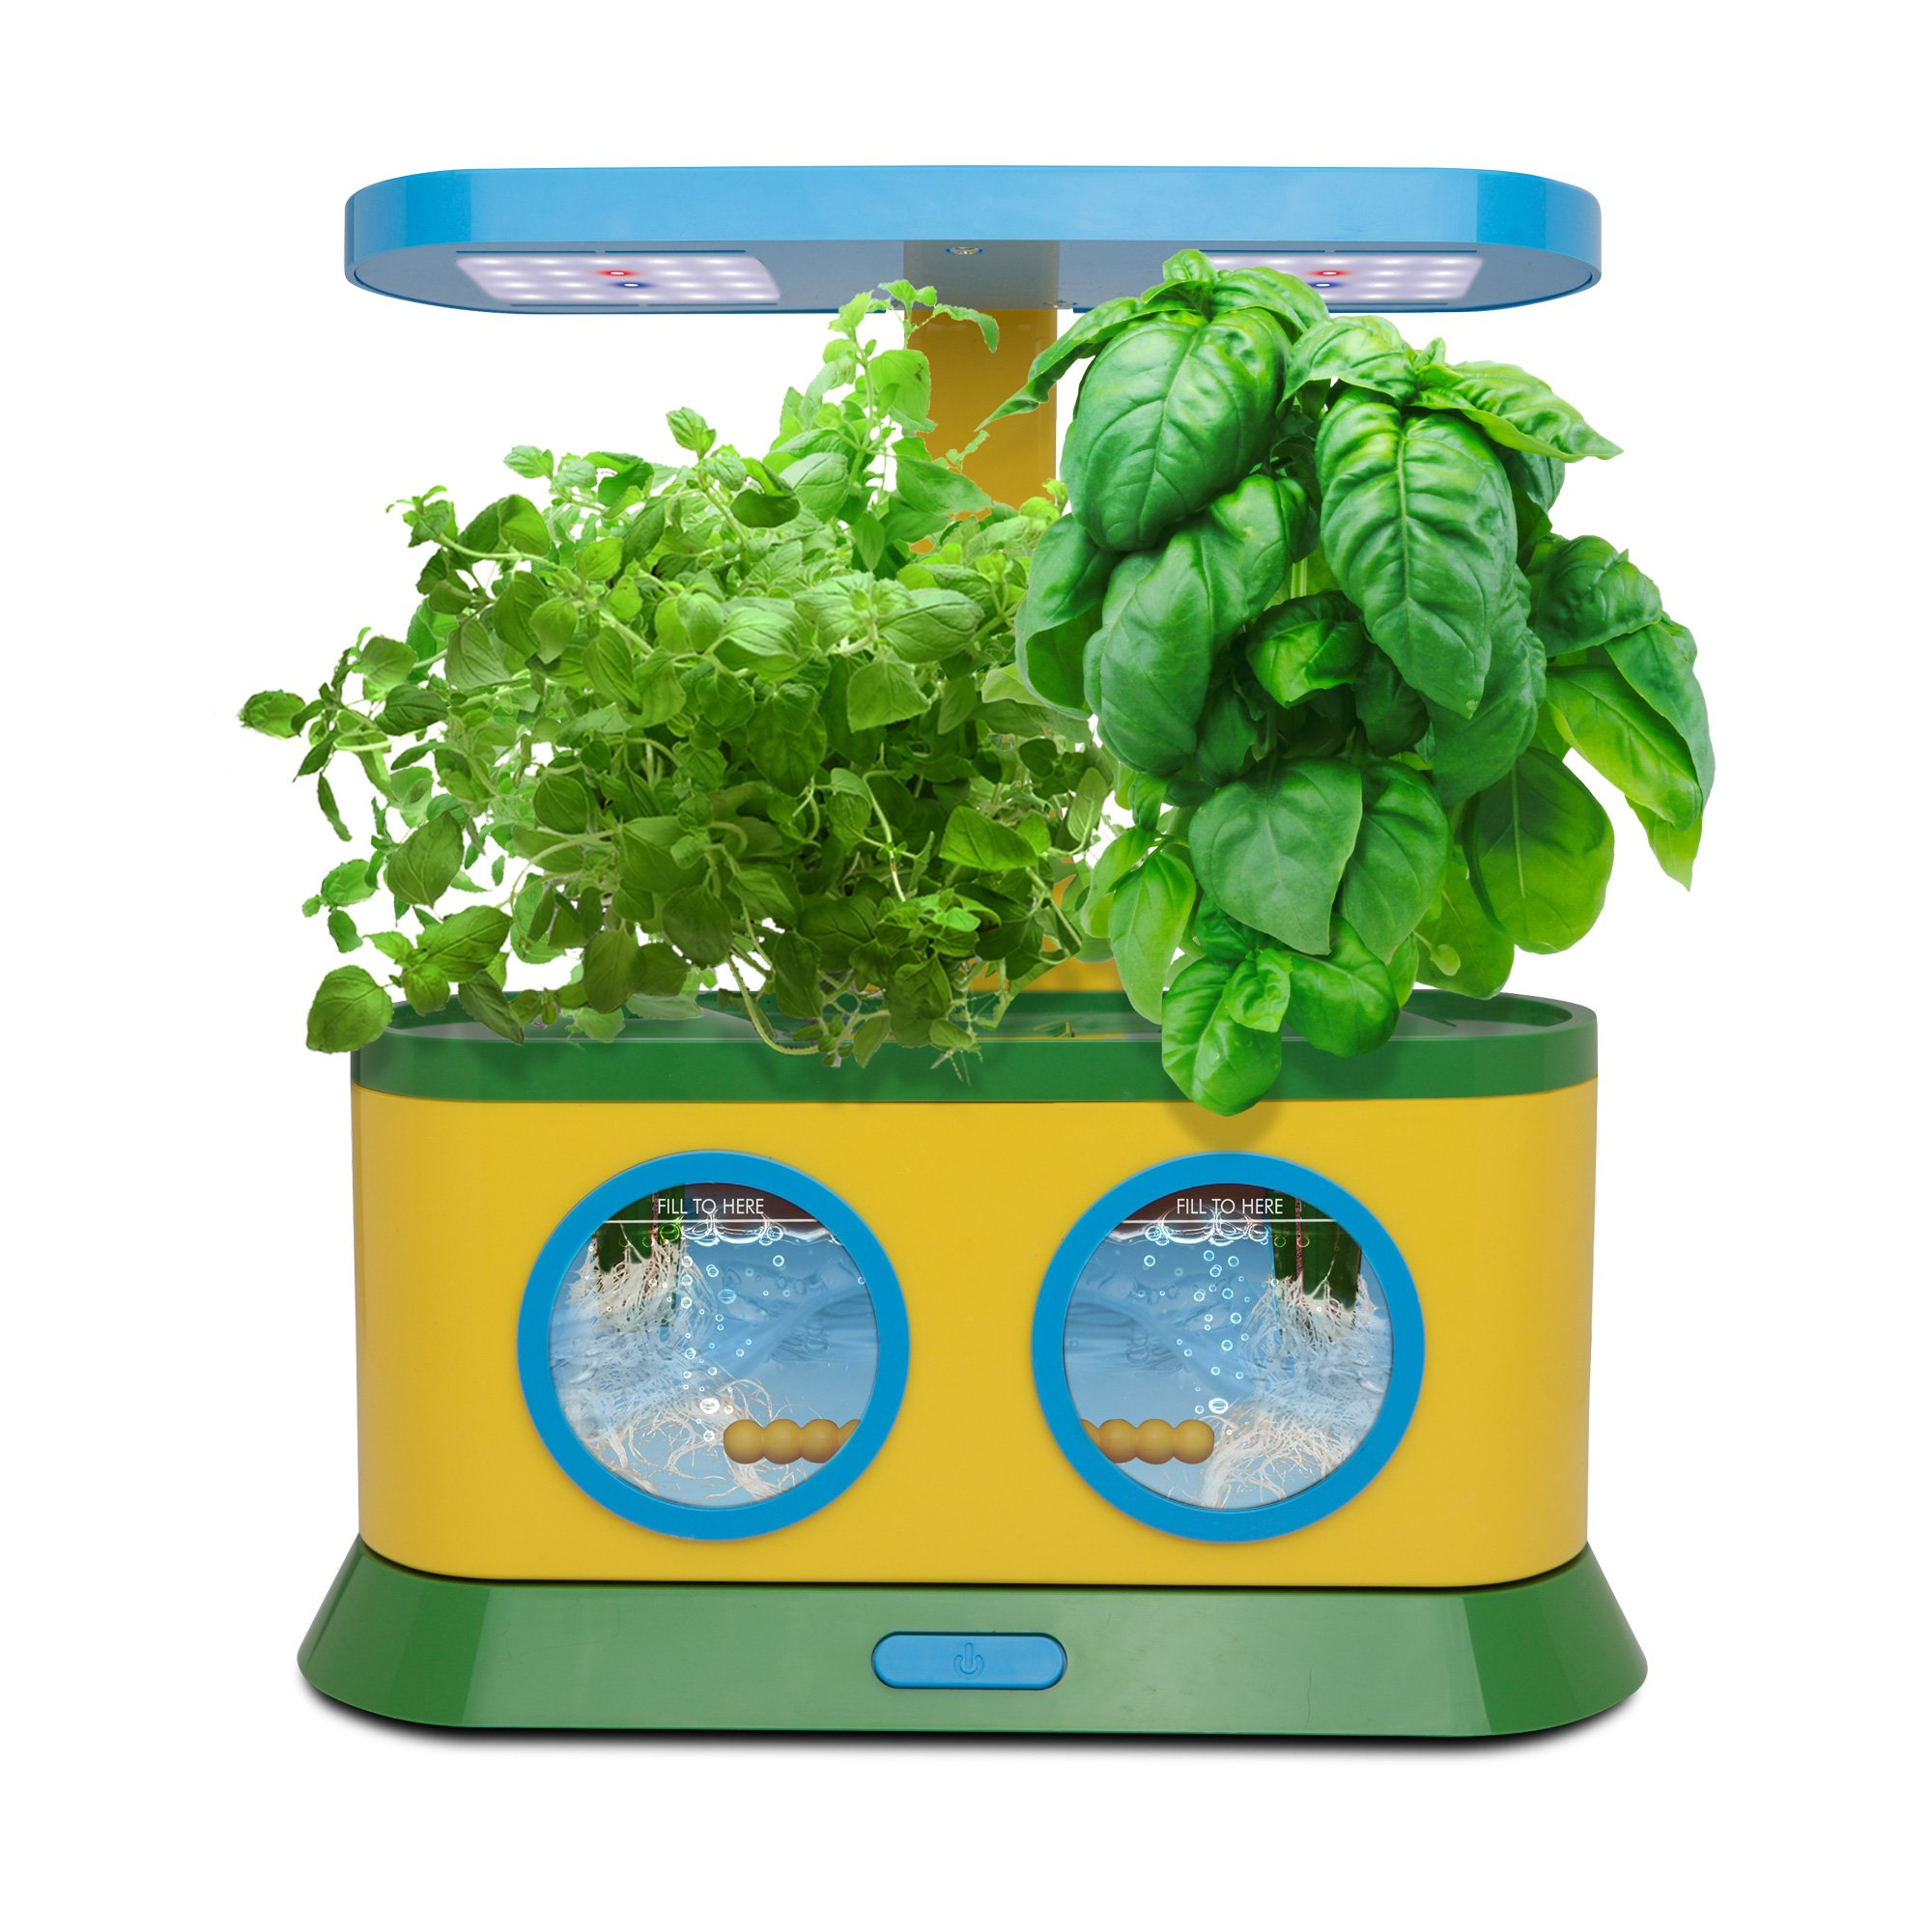 AeroGarden Herbie Kid's Garden with Pizza Party Activity Kit